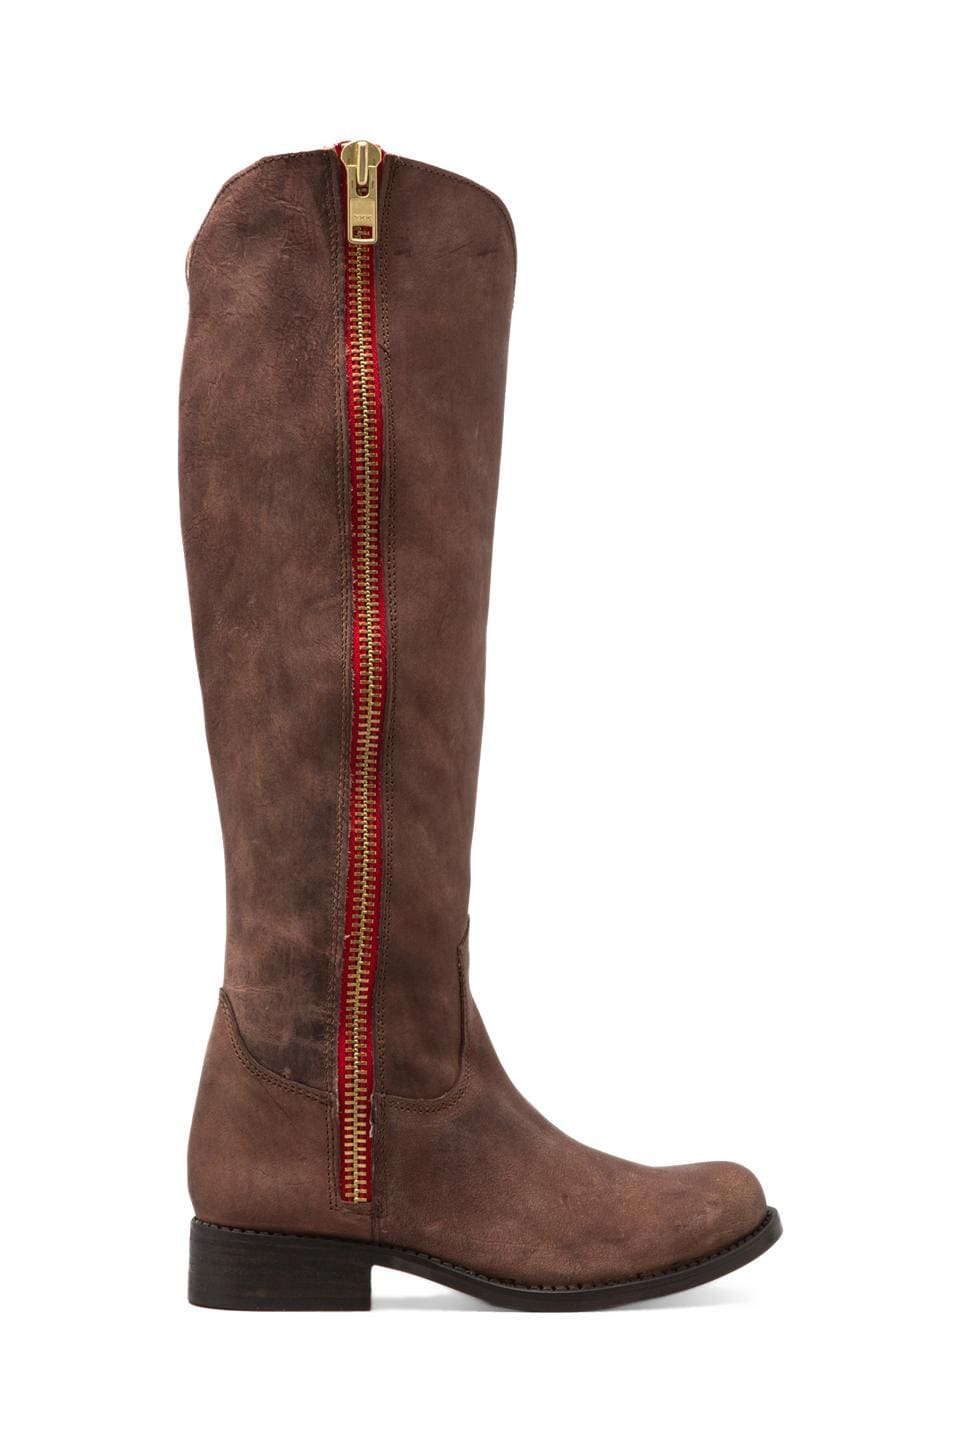 Steve Madden Ruse Boot in Brown Multi